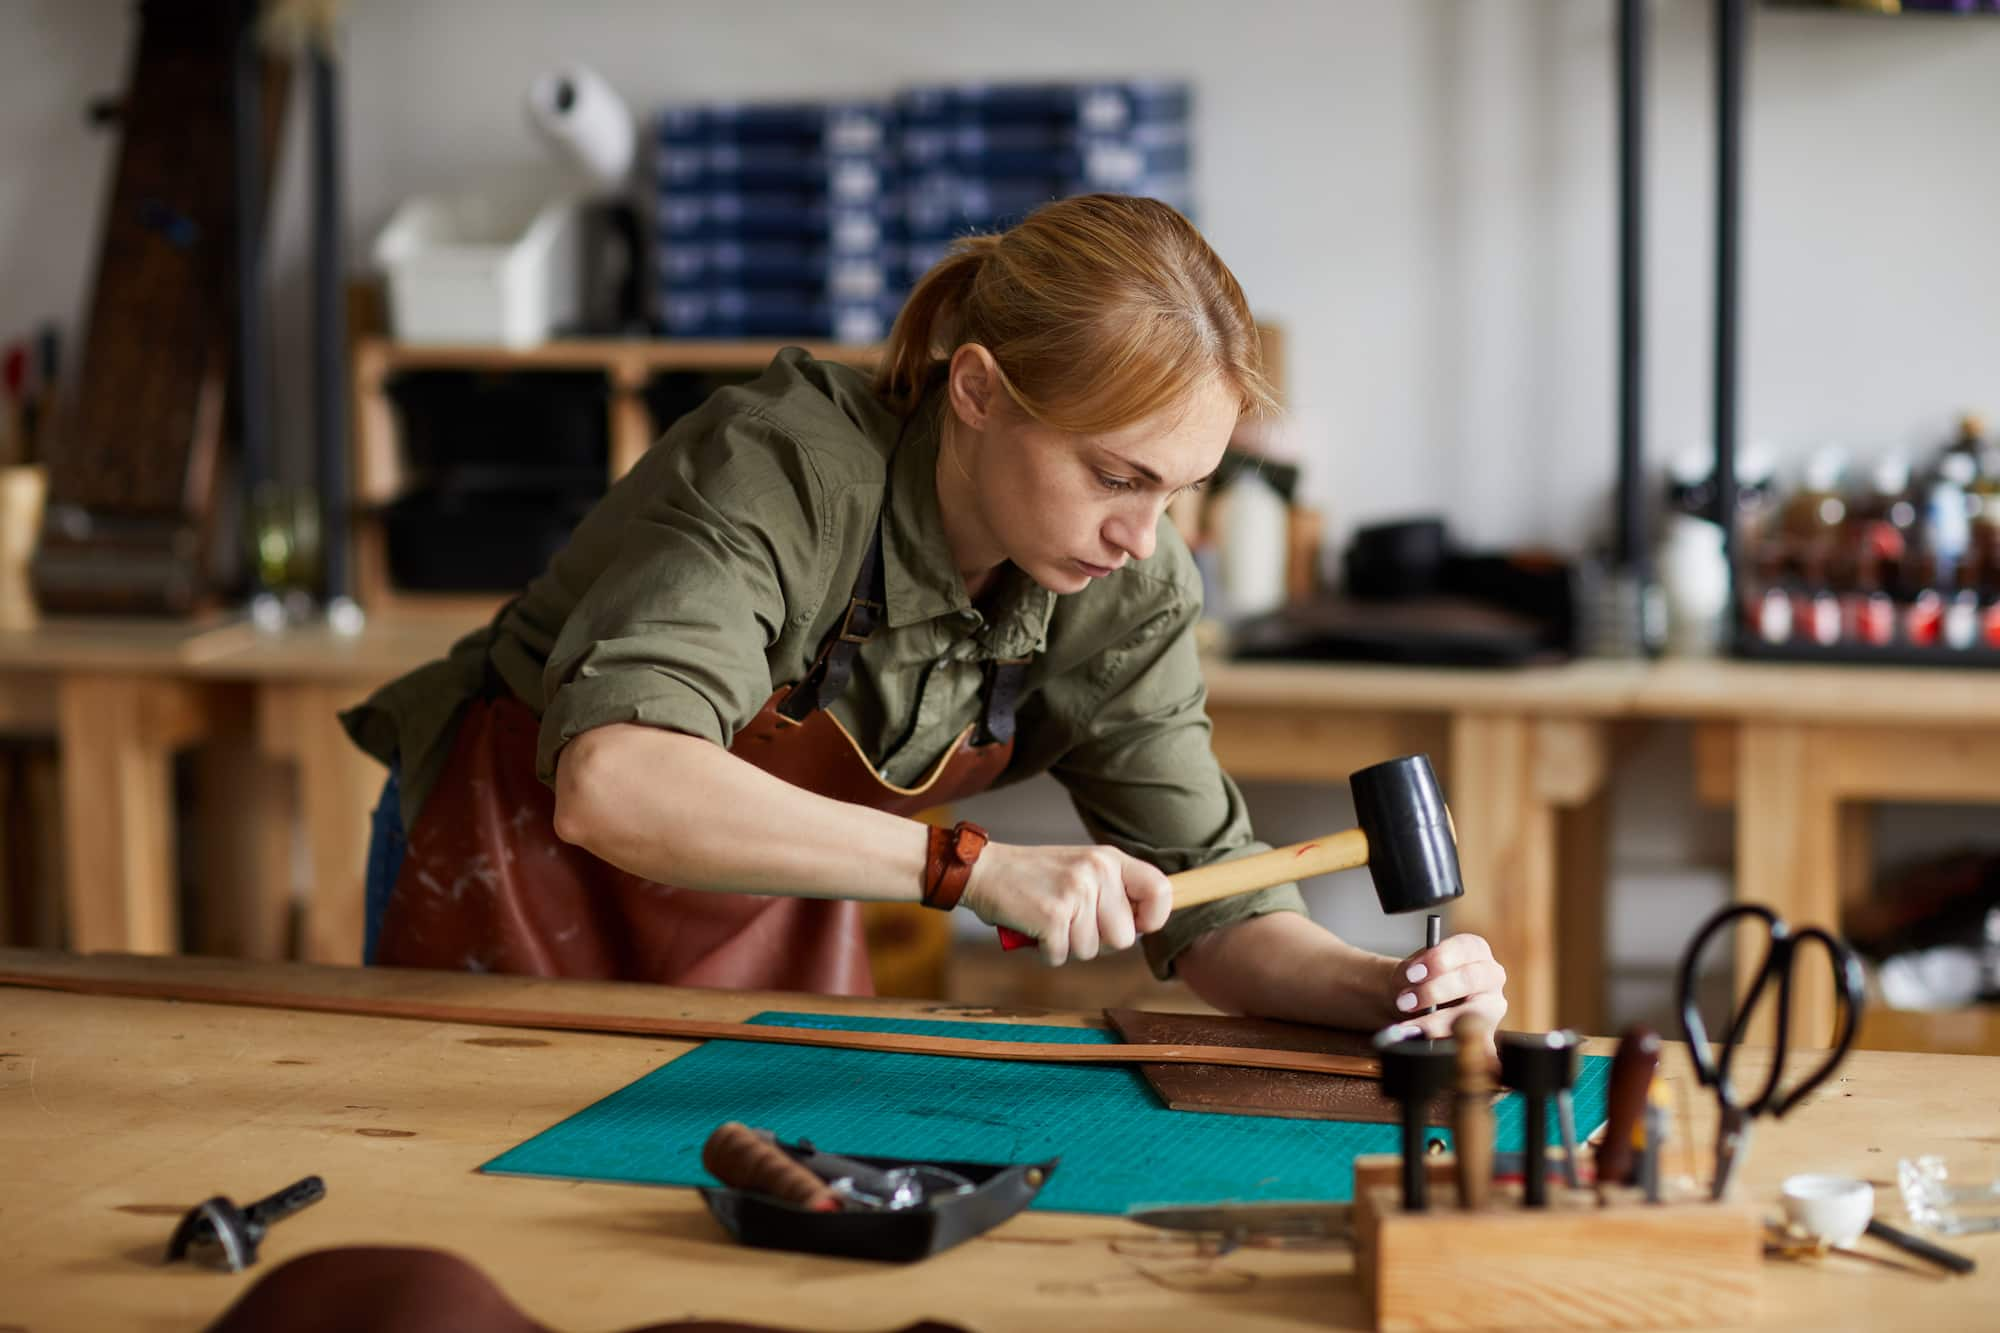 An image of a craft person at work to demonstrate how a large image can be greatly reduced in file size.